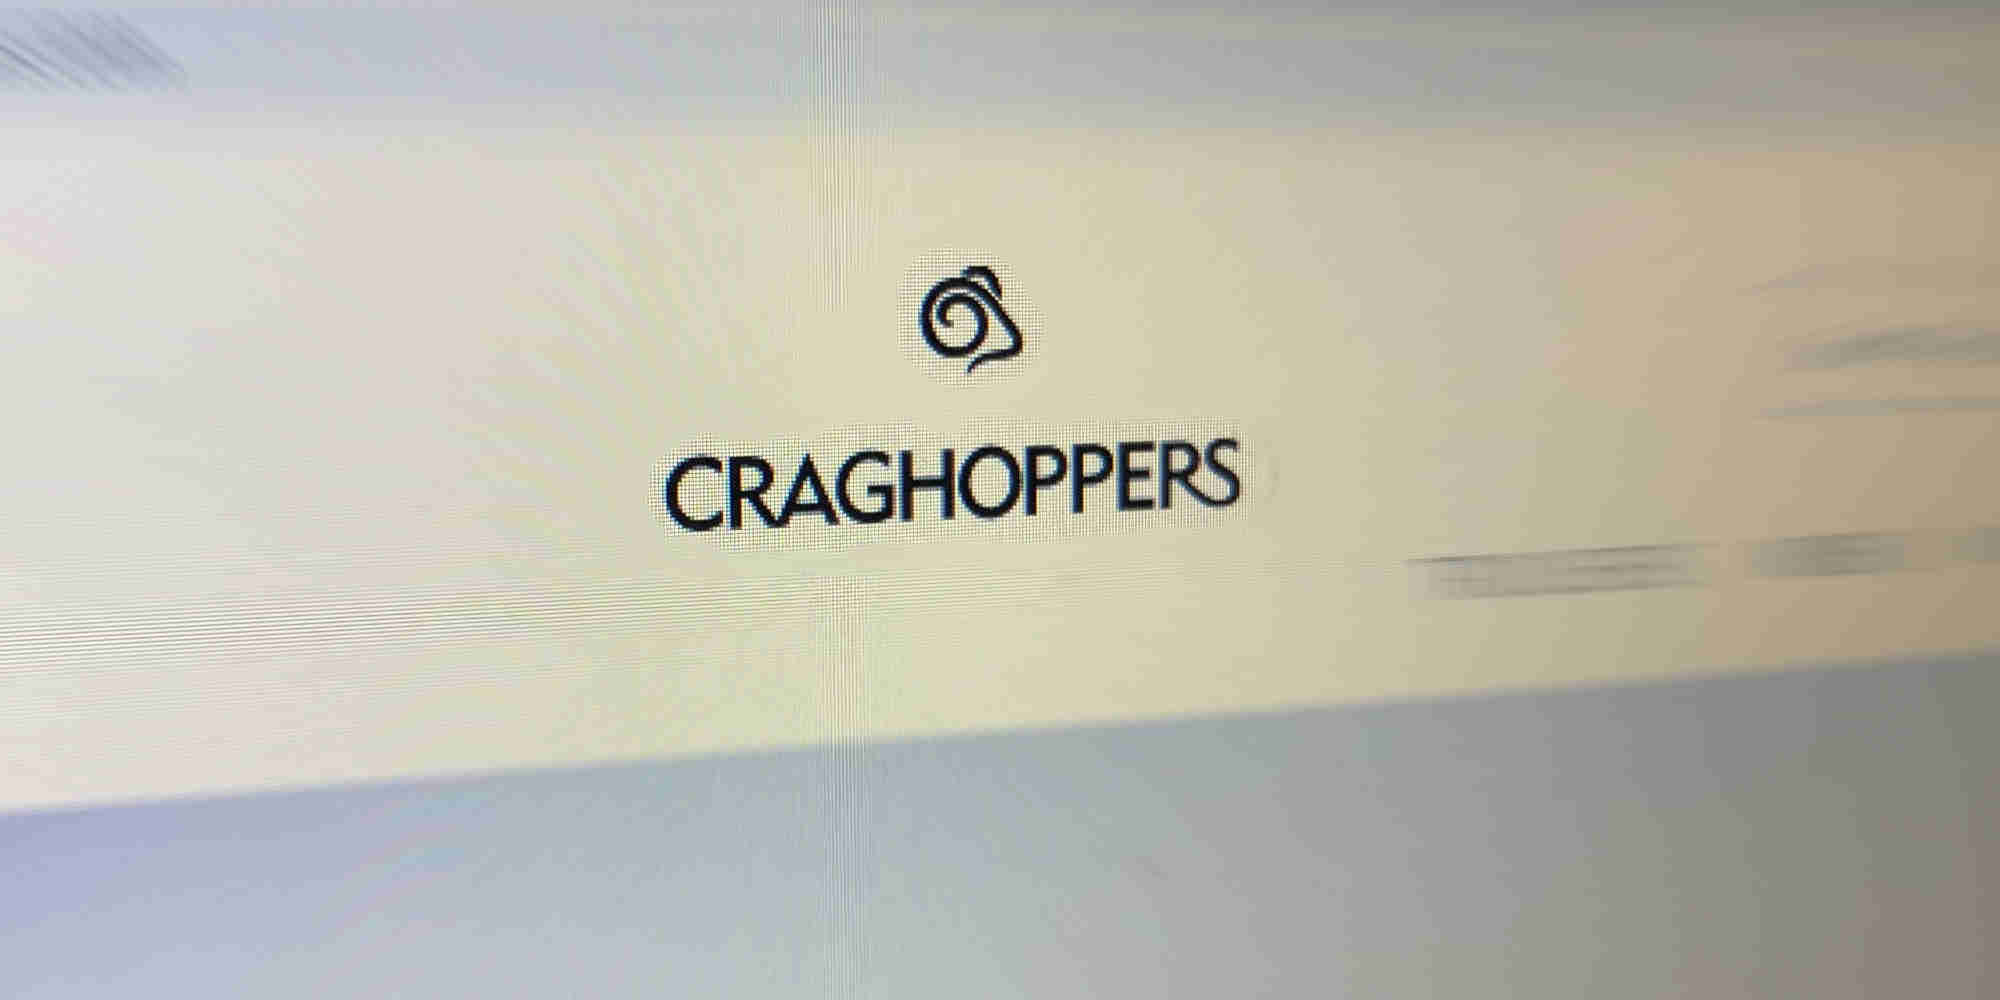 Craghoppers Achieve 45% Rise In Revenue With Amazon marketing services